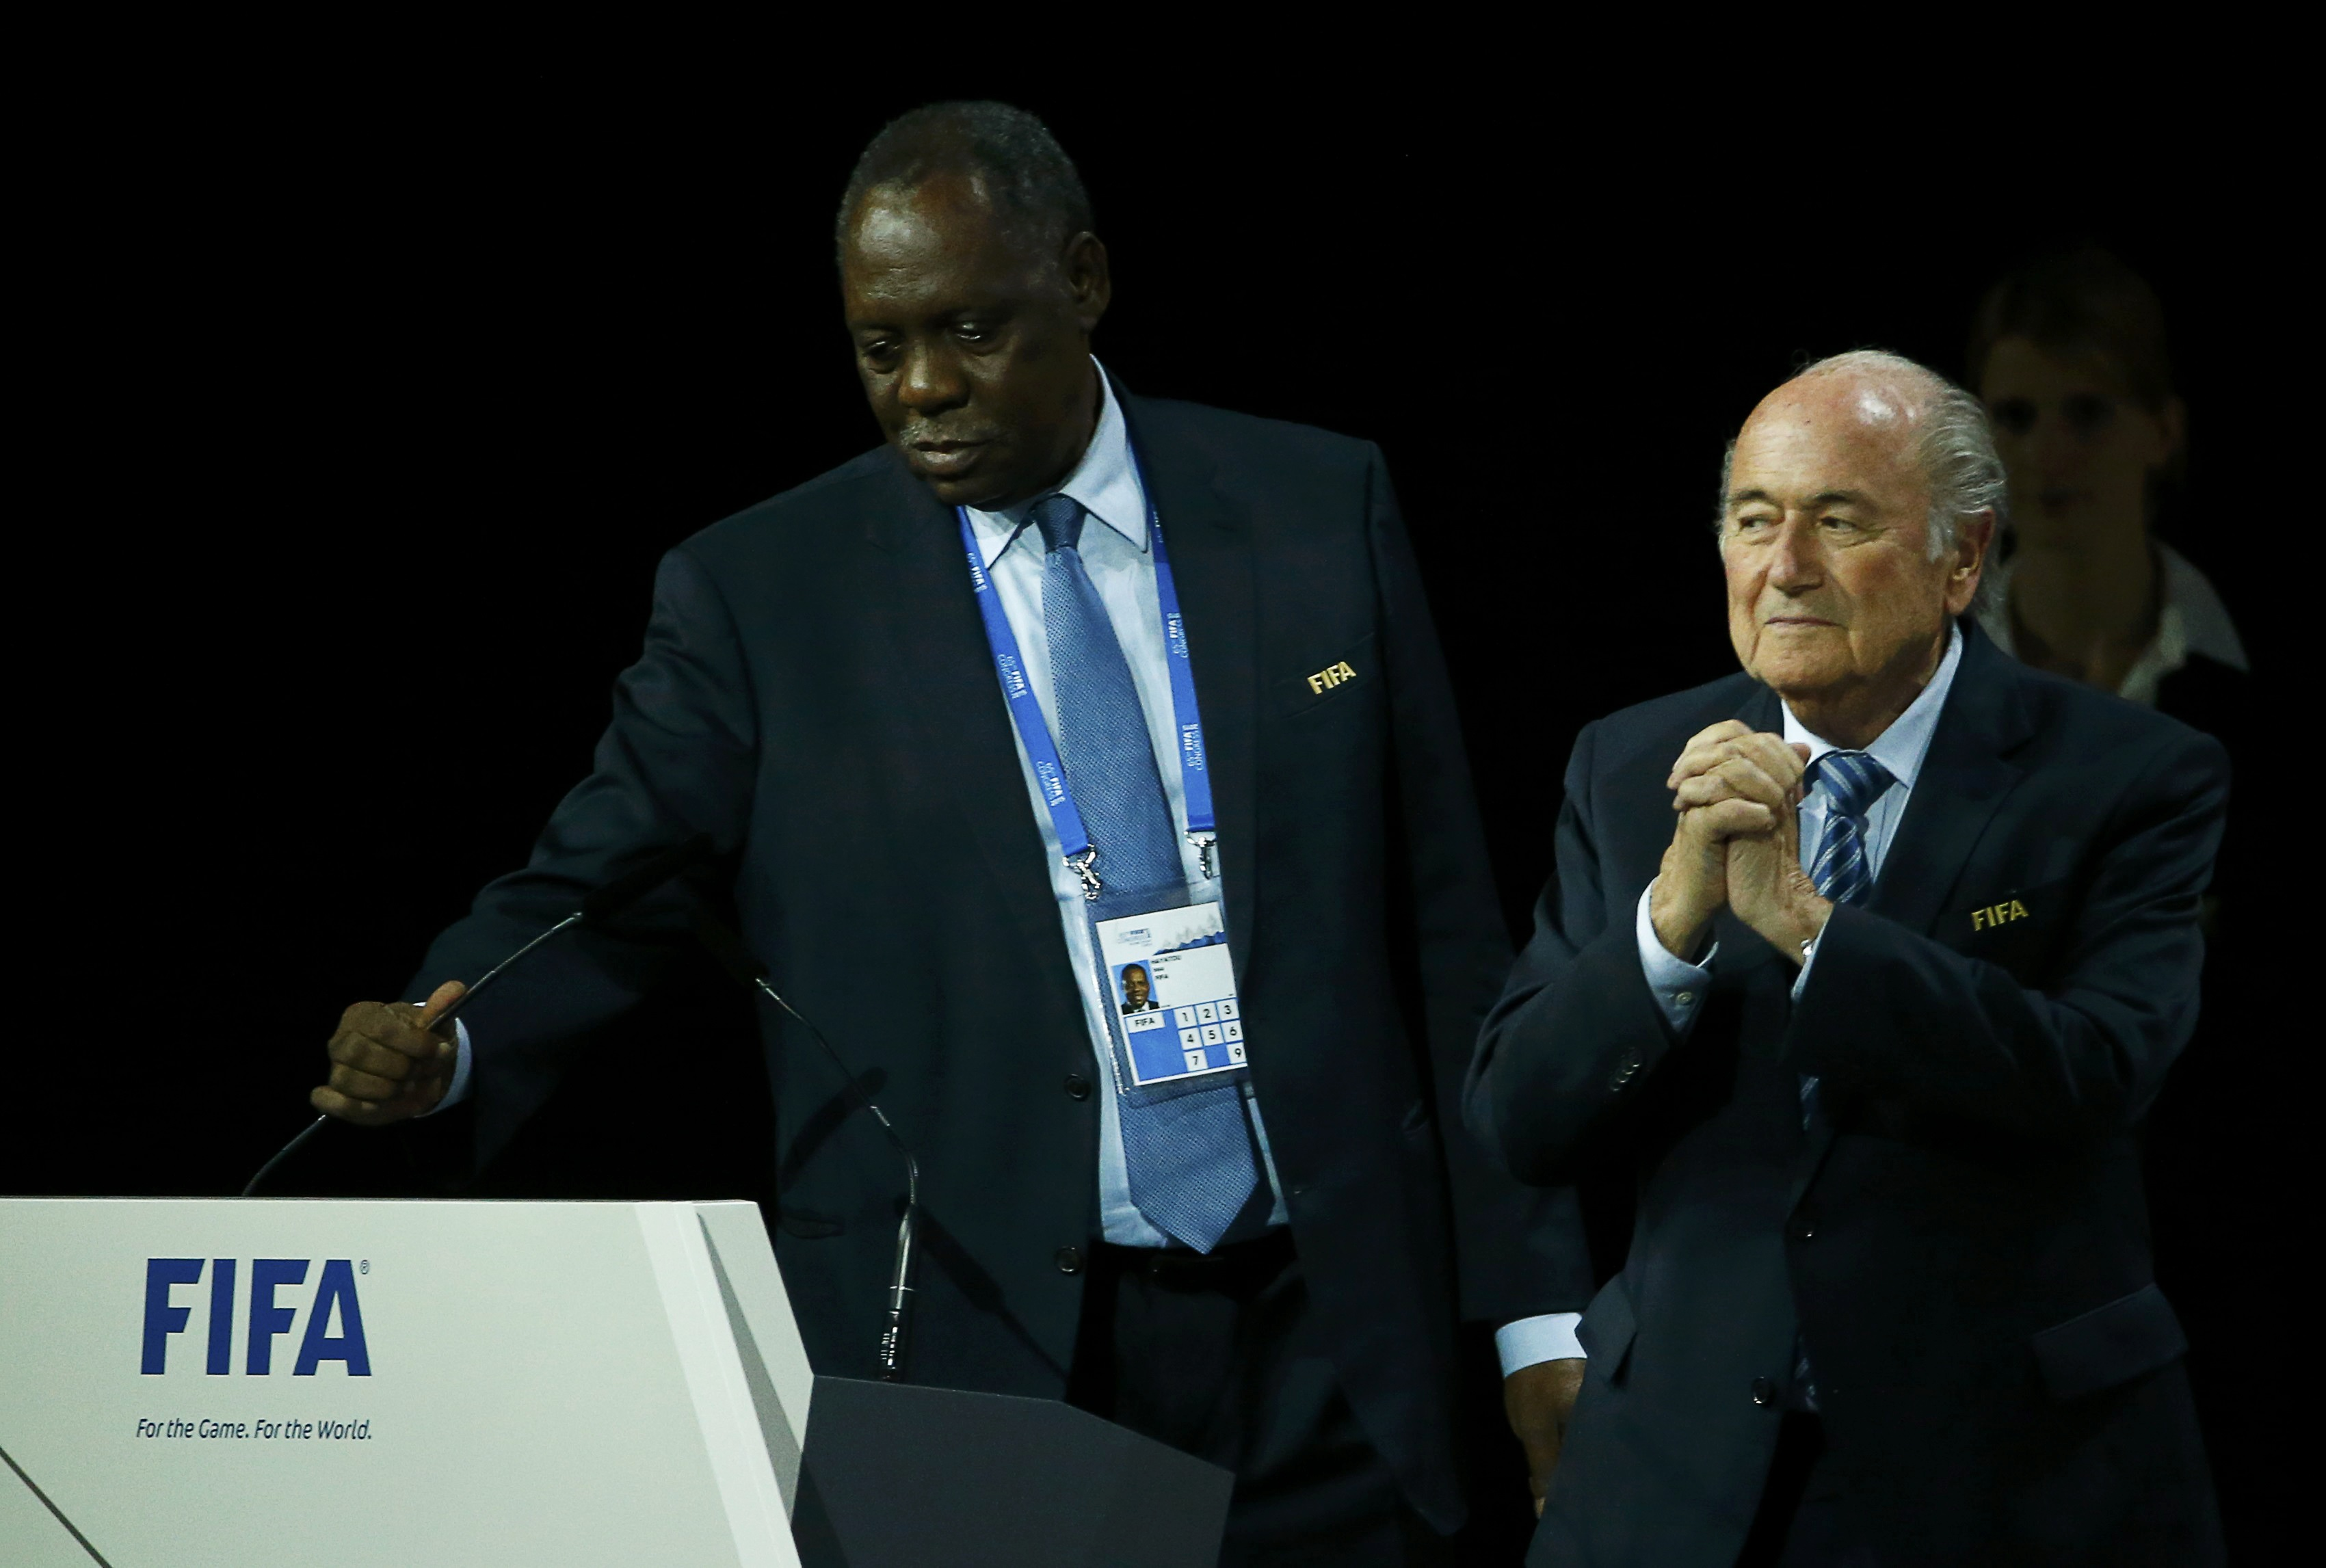 Issa Hayatou (L), Senior Vice President of the FIFA stands with FIFA President Sepp Blatter after he was re-elected at the 65th FIFA Congress in Zurich, Switzerland, in this May 29, 2015 file photo. Issa Hayatou of Cameroon will take over as acting FIFA President after Sepp Blatter was provisionally suspended for 90 days on Thursday by an ethics committee, football's governing body confirmed in a statement. Hayatou, the president of the Confederation of African Football (CAF), would take over, in accordance with FIFA statutes, as the longest-serving vice-president on FIFA's executive committee, the statement said. REUTERS/Ruben Sprich/Files